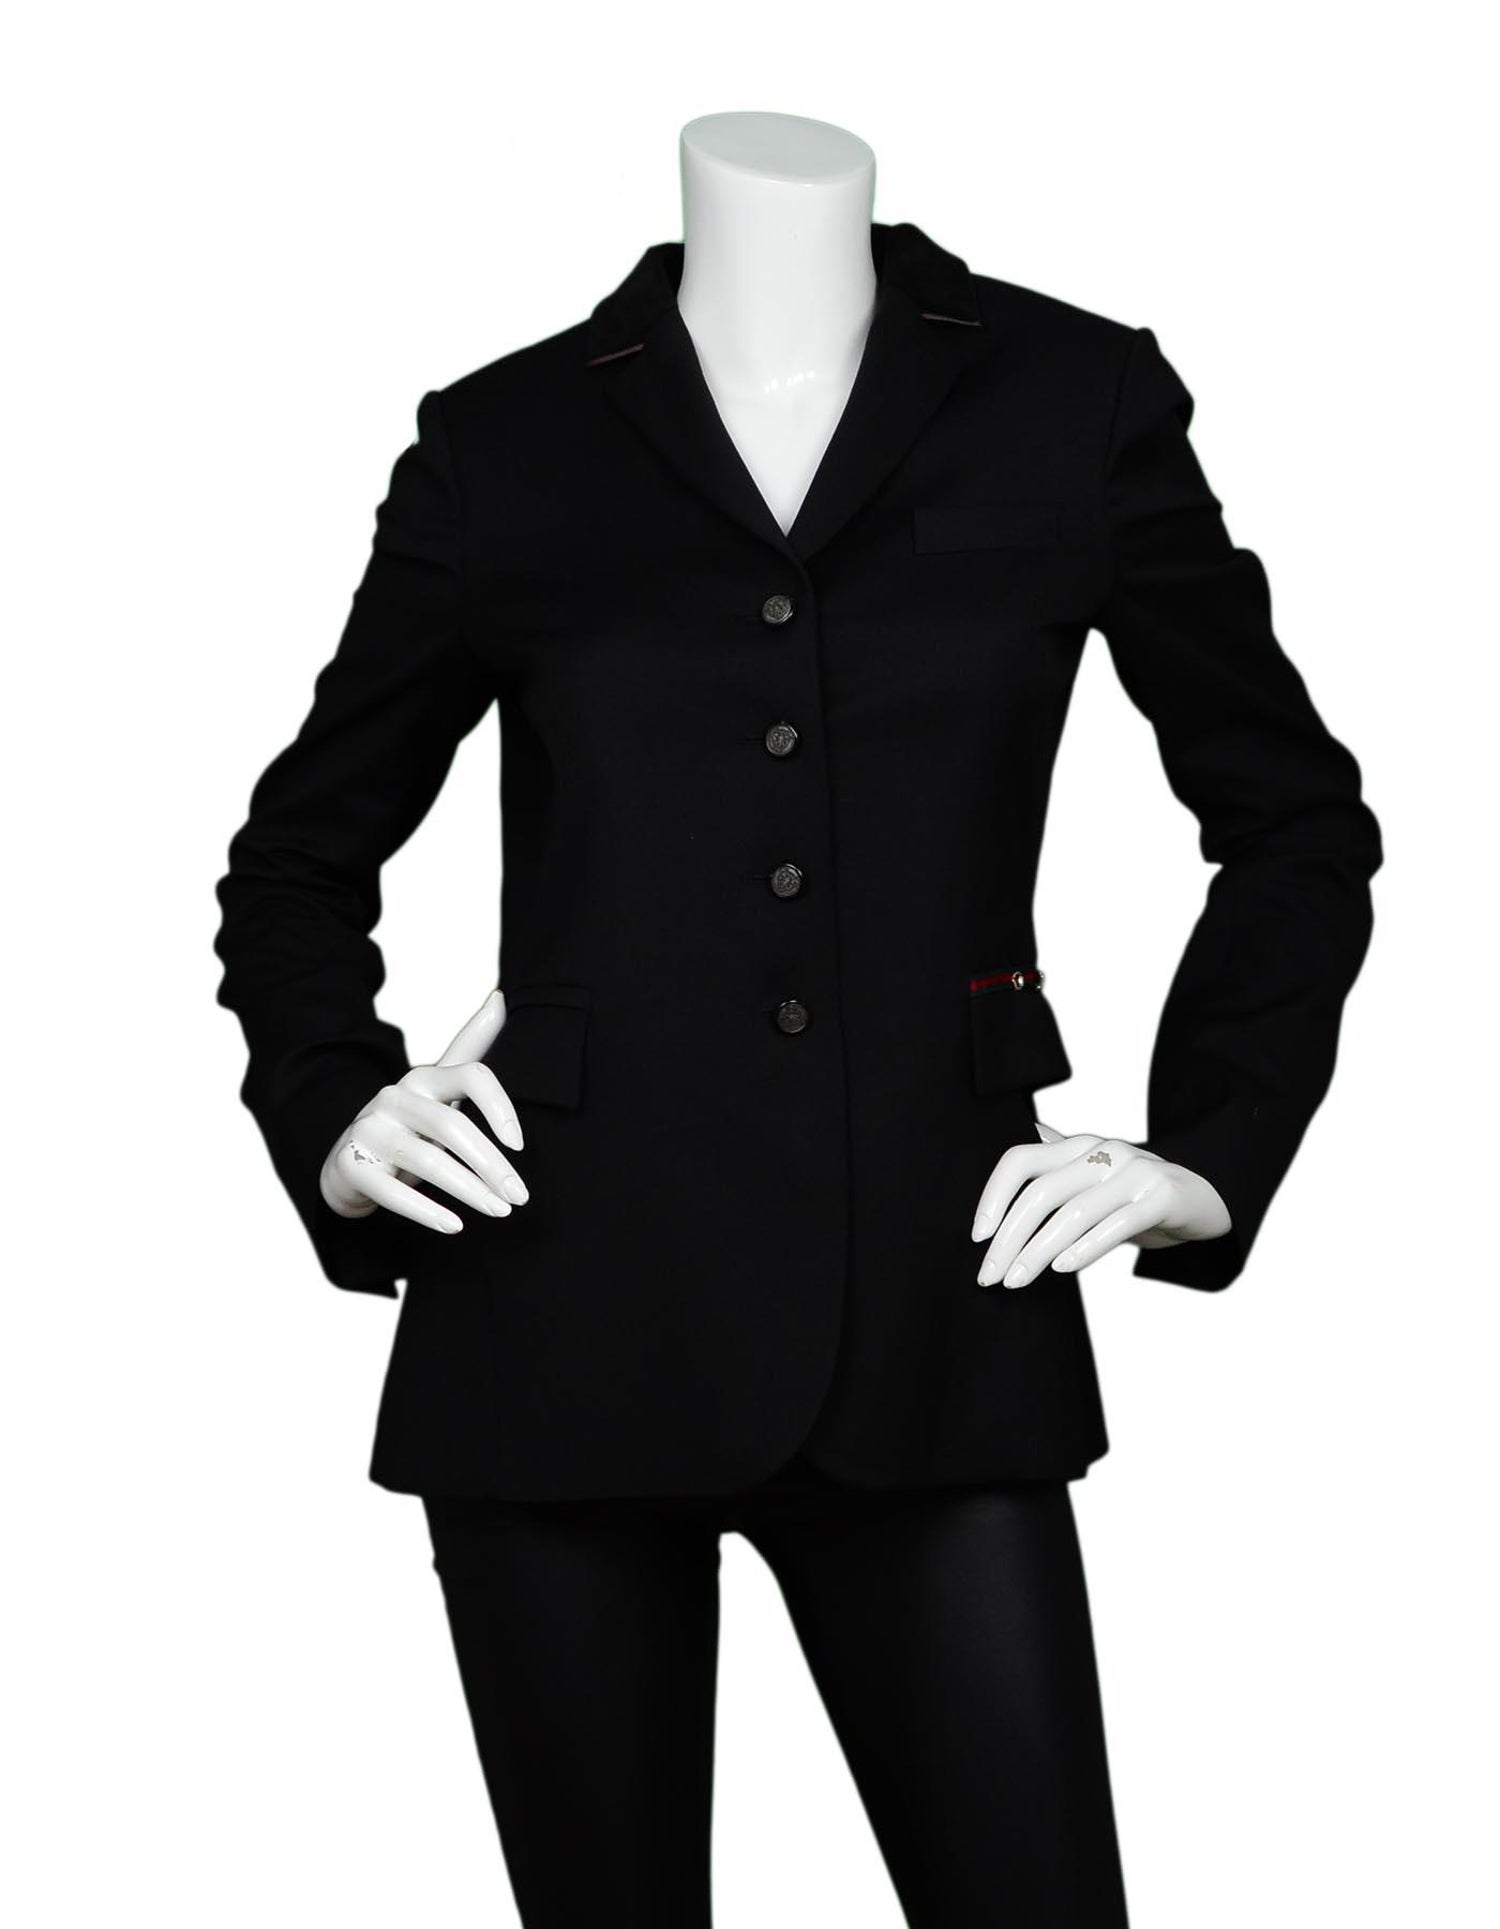 ee5463f53 Gucci Black Equestrian Riding Jacket W/ Velvet and Web Trim Sz 42 For Sale  at 1stdibs